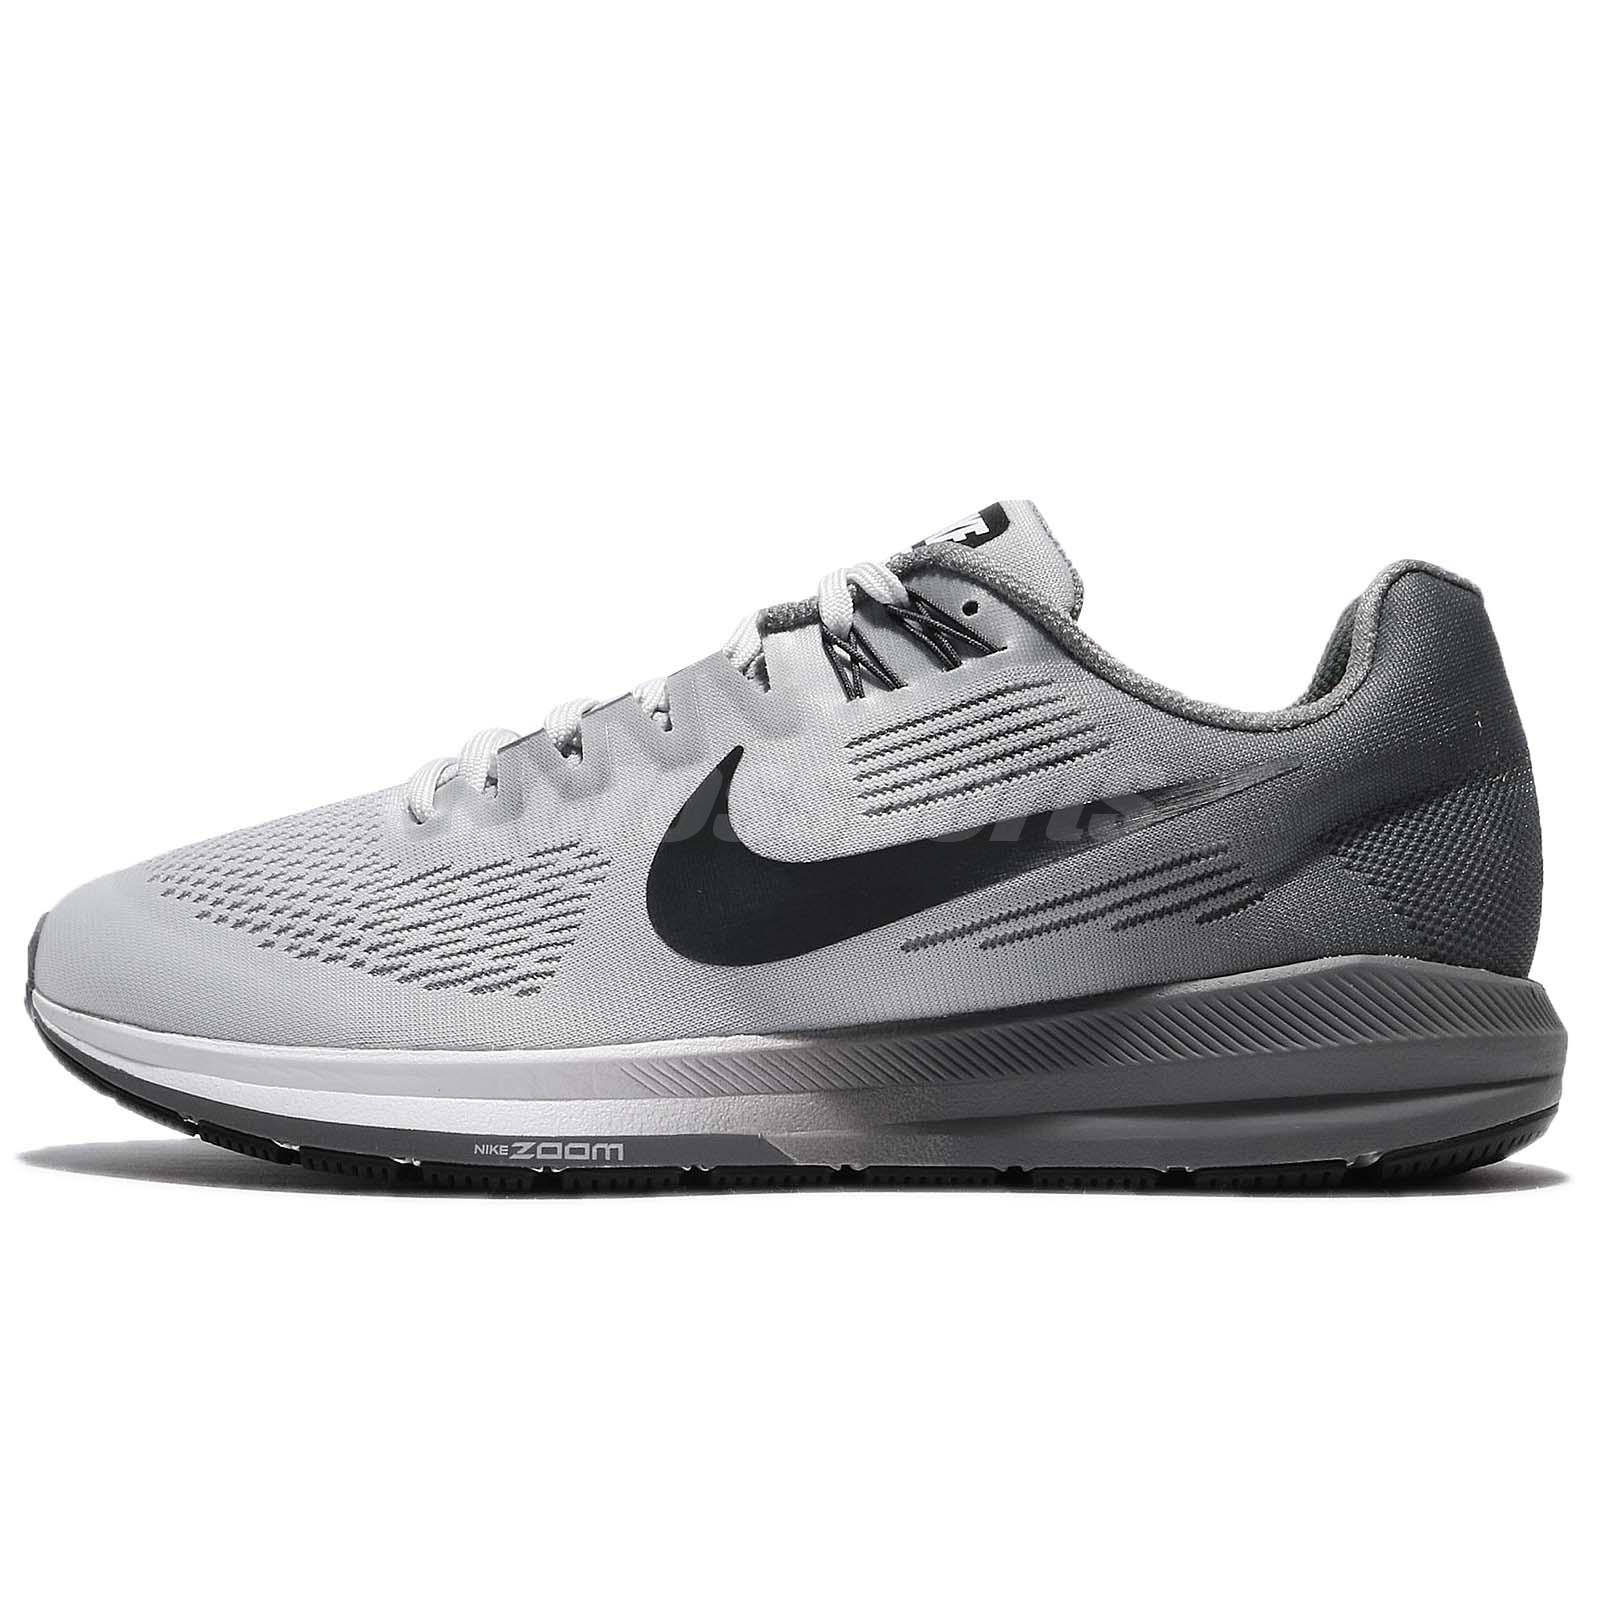 0bb18578e24f3 Nike Air Zoom Structure 21 Pure Platinum Anthracite Men Running Shoes 904695 -005